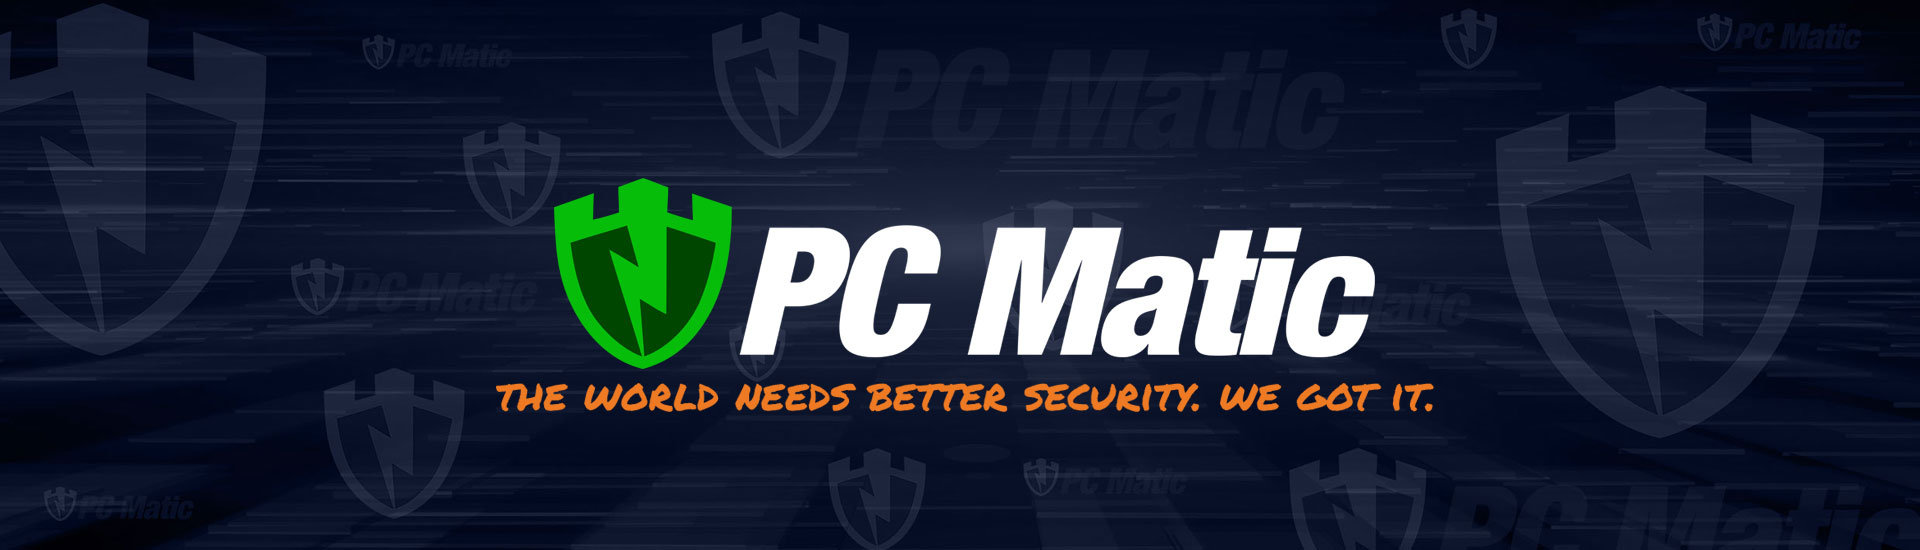 Malwarebytes Removes PC Matic PUA Categorization